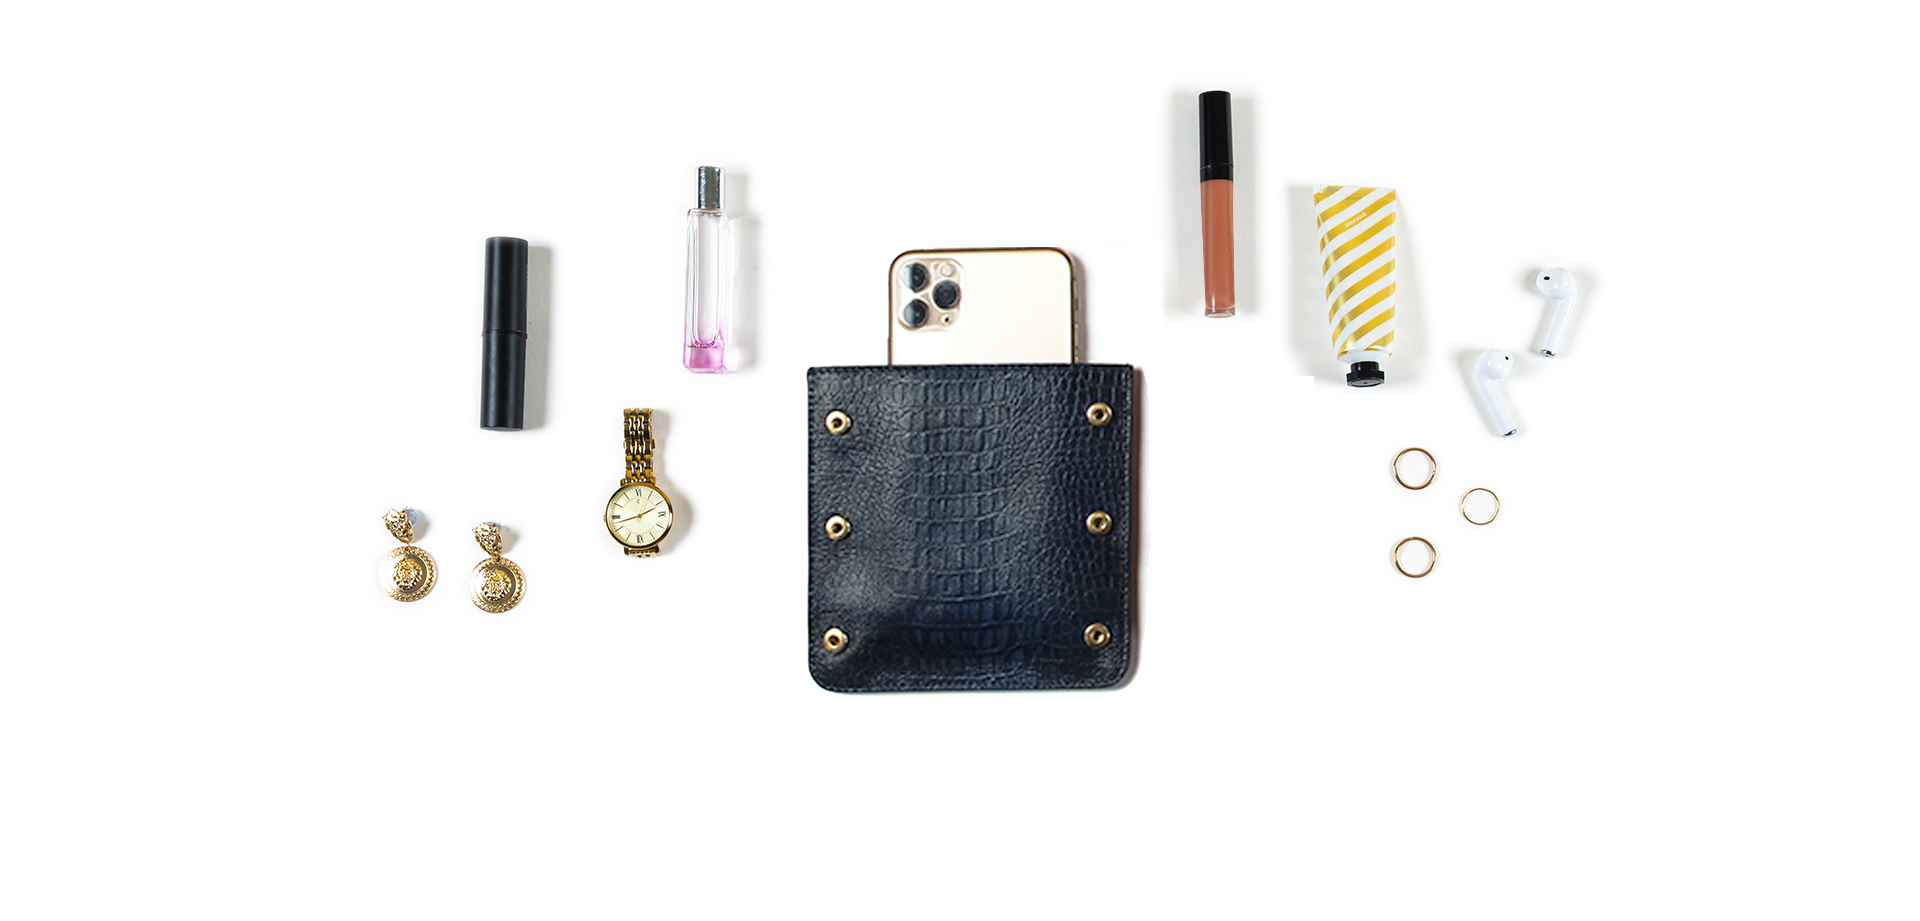 Asteria Phone Pocket in embossed croc navy leather fits phone & cosmetics